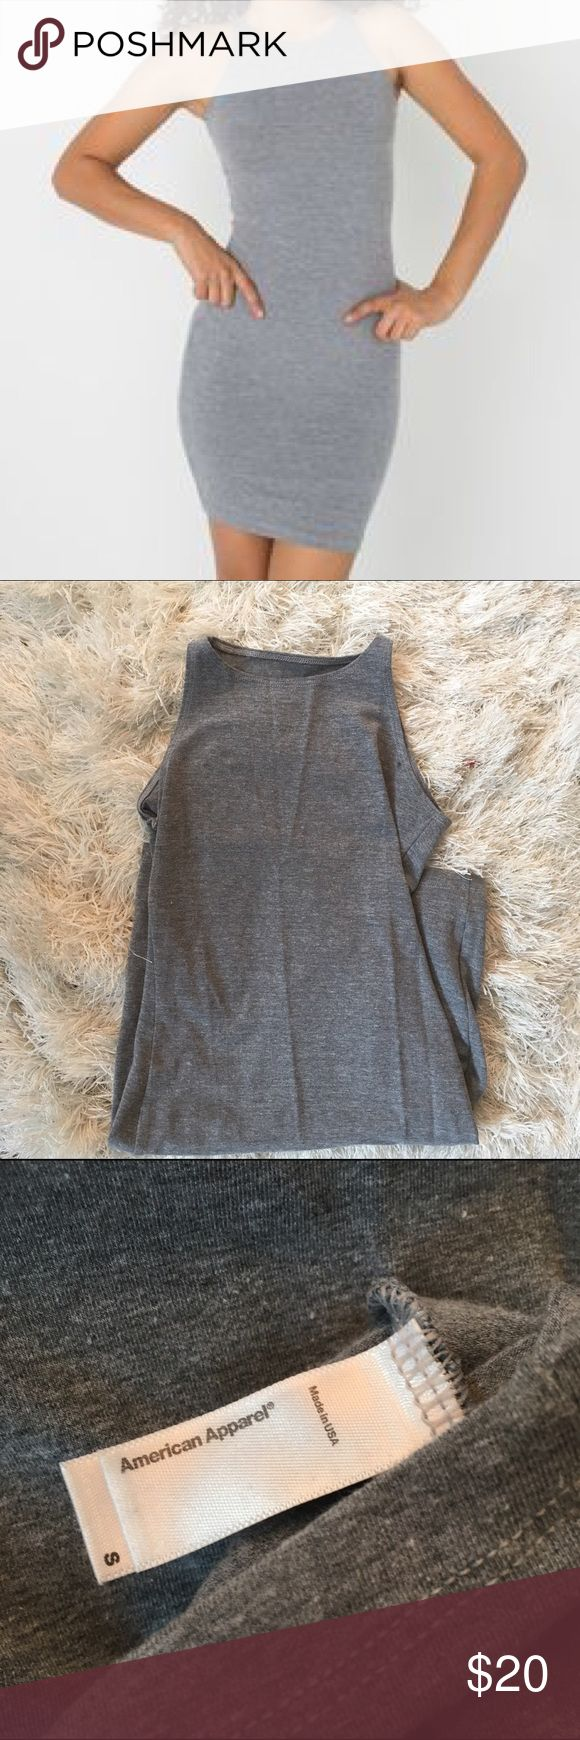 American Apparel Grey Bodycon Dress. Size S American apparel high neck bodycon dress. Perfect condition worn once American Apparel Dresses